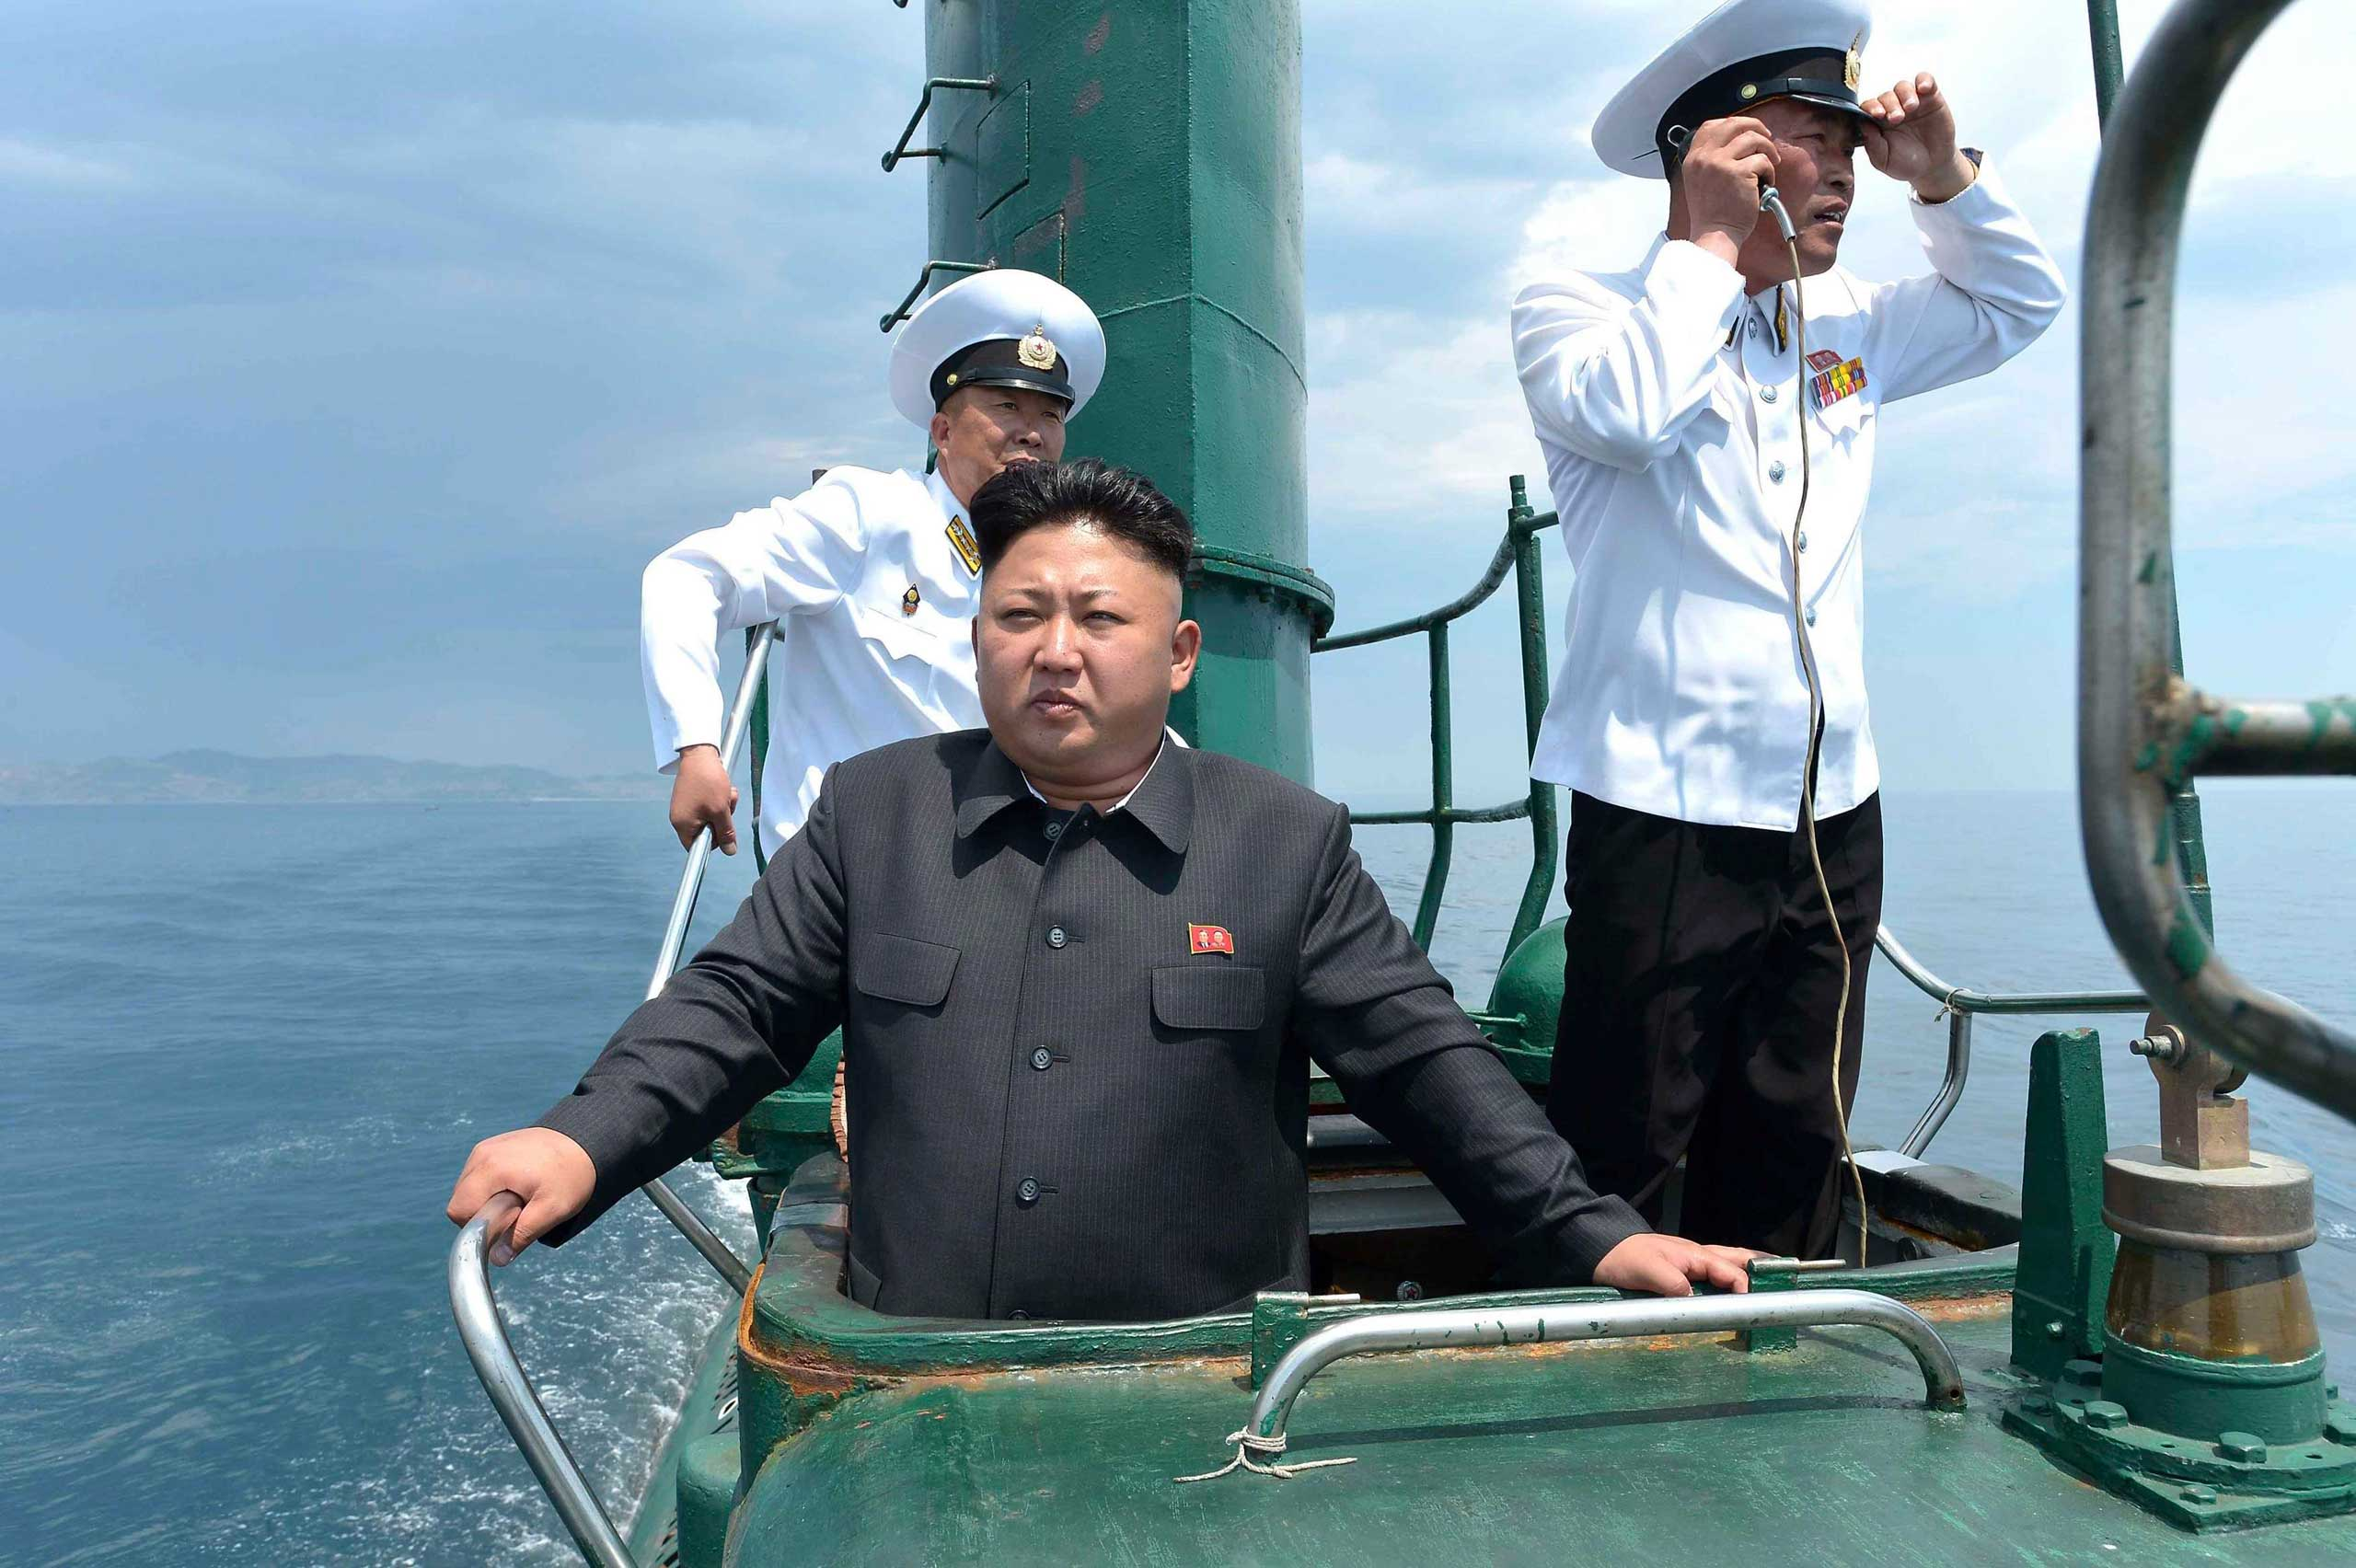 Kim Jong Un, North Korean leader, looks out                               from the submarine of a Korean People's Army                               naval unit during an inspection in this undated photo released by North Korea's Korean Central News Agency (KCNA) in Pyongyang, June 16, 2014.